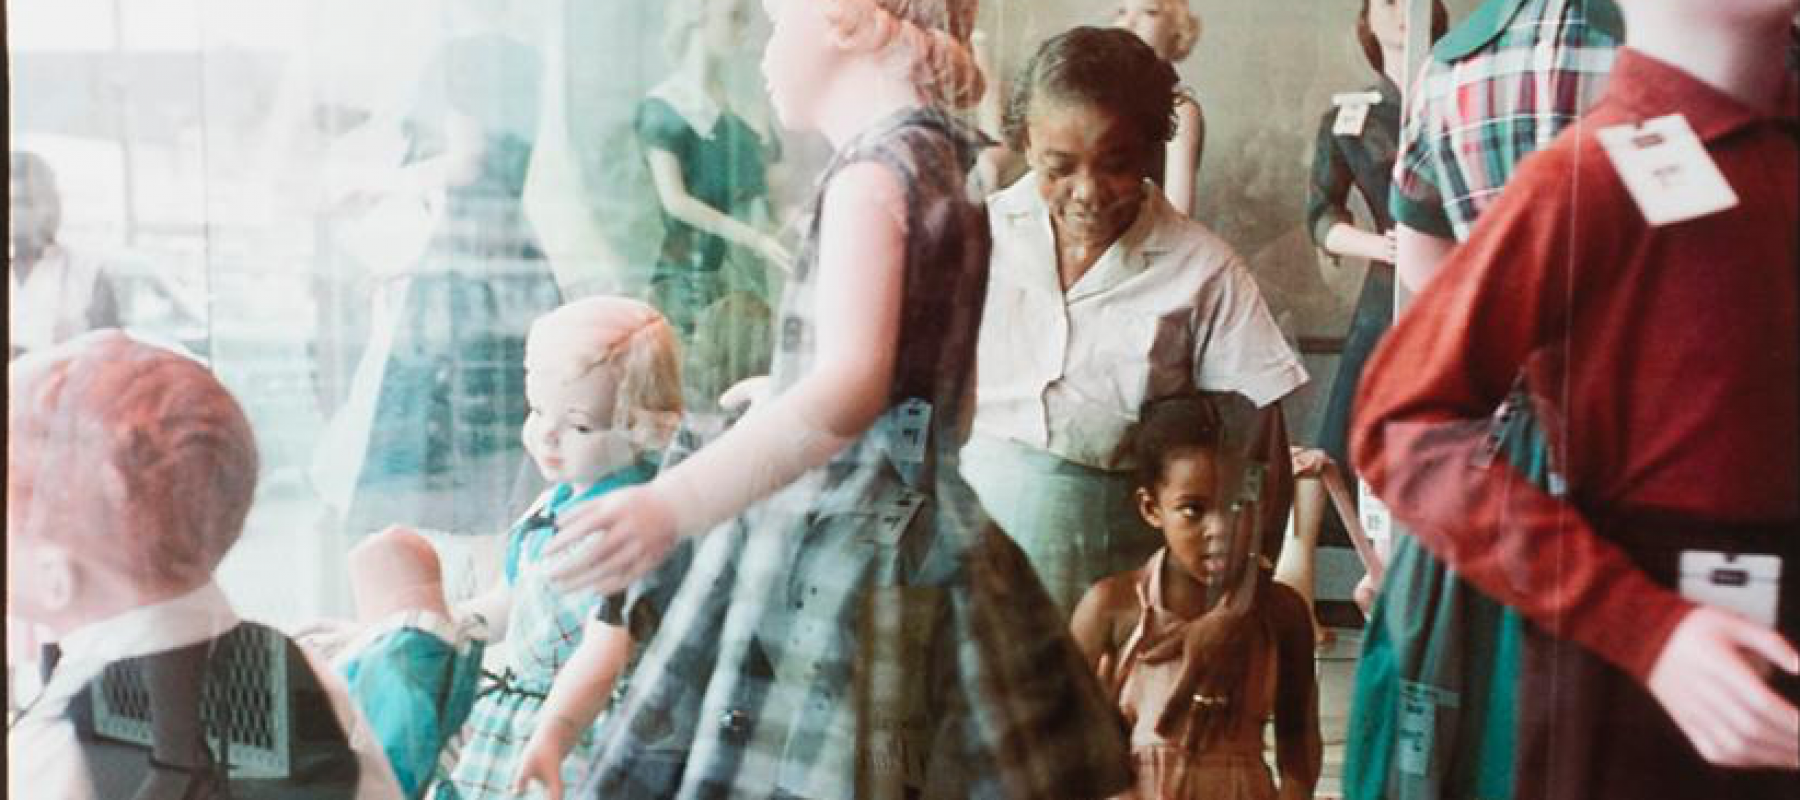 a Black girl with her grandma looks at white dolls in a 1950s shop window